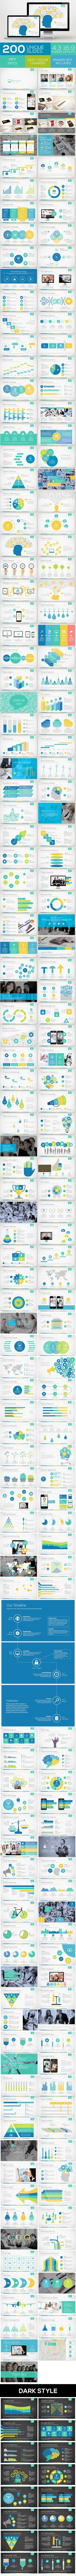 Akuntansi Powerpoint - Business Powerpoint Templates